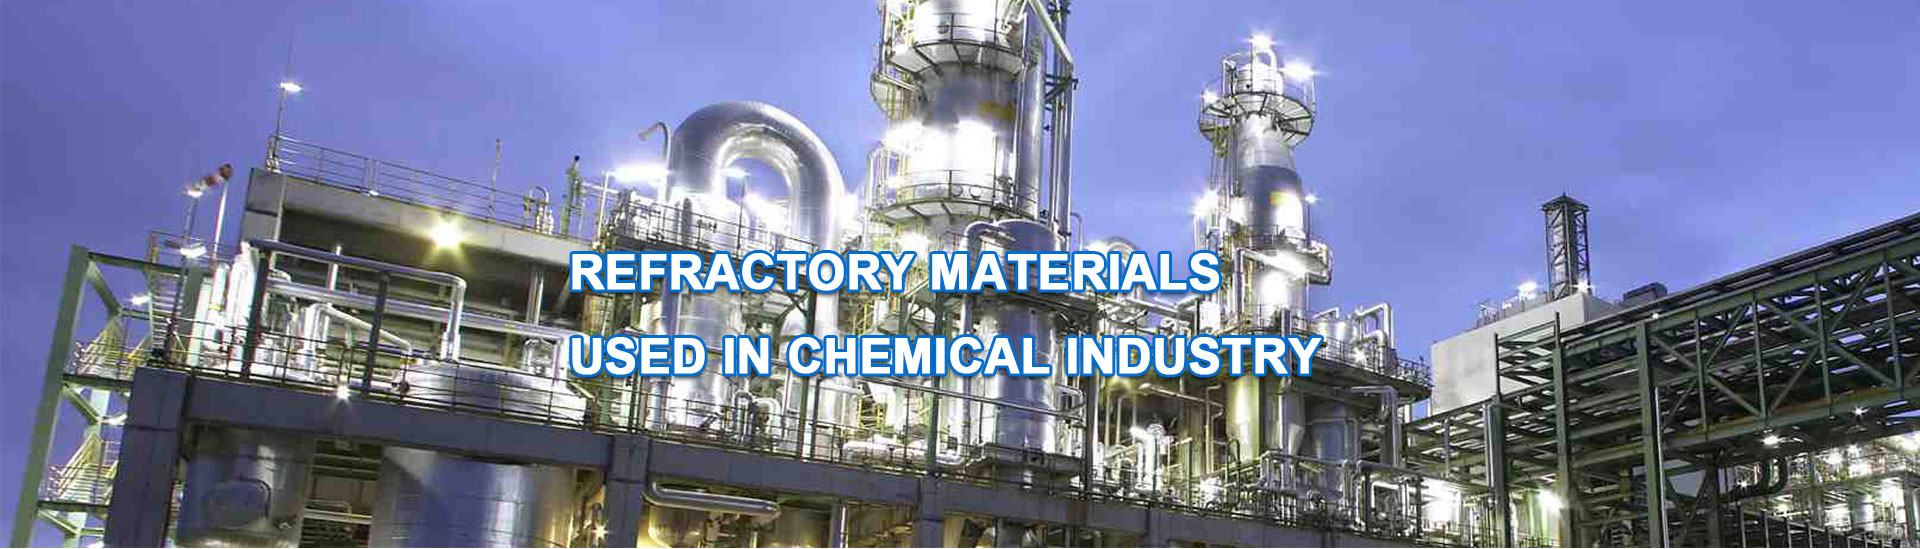 Refractory materials used in chemical industry.